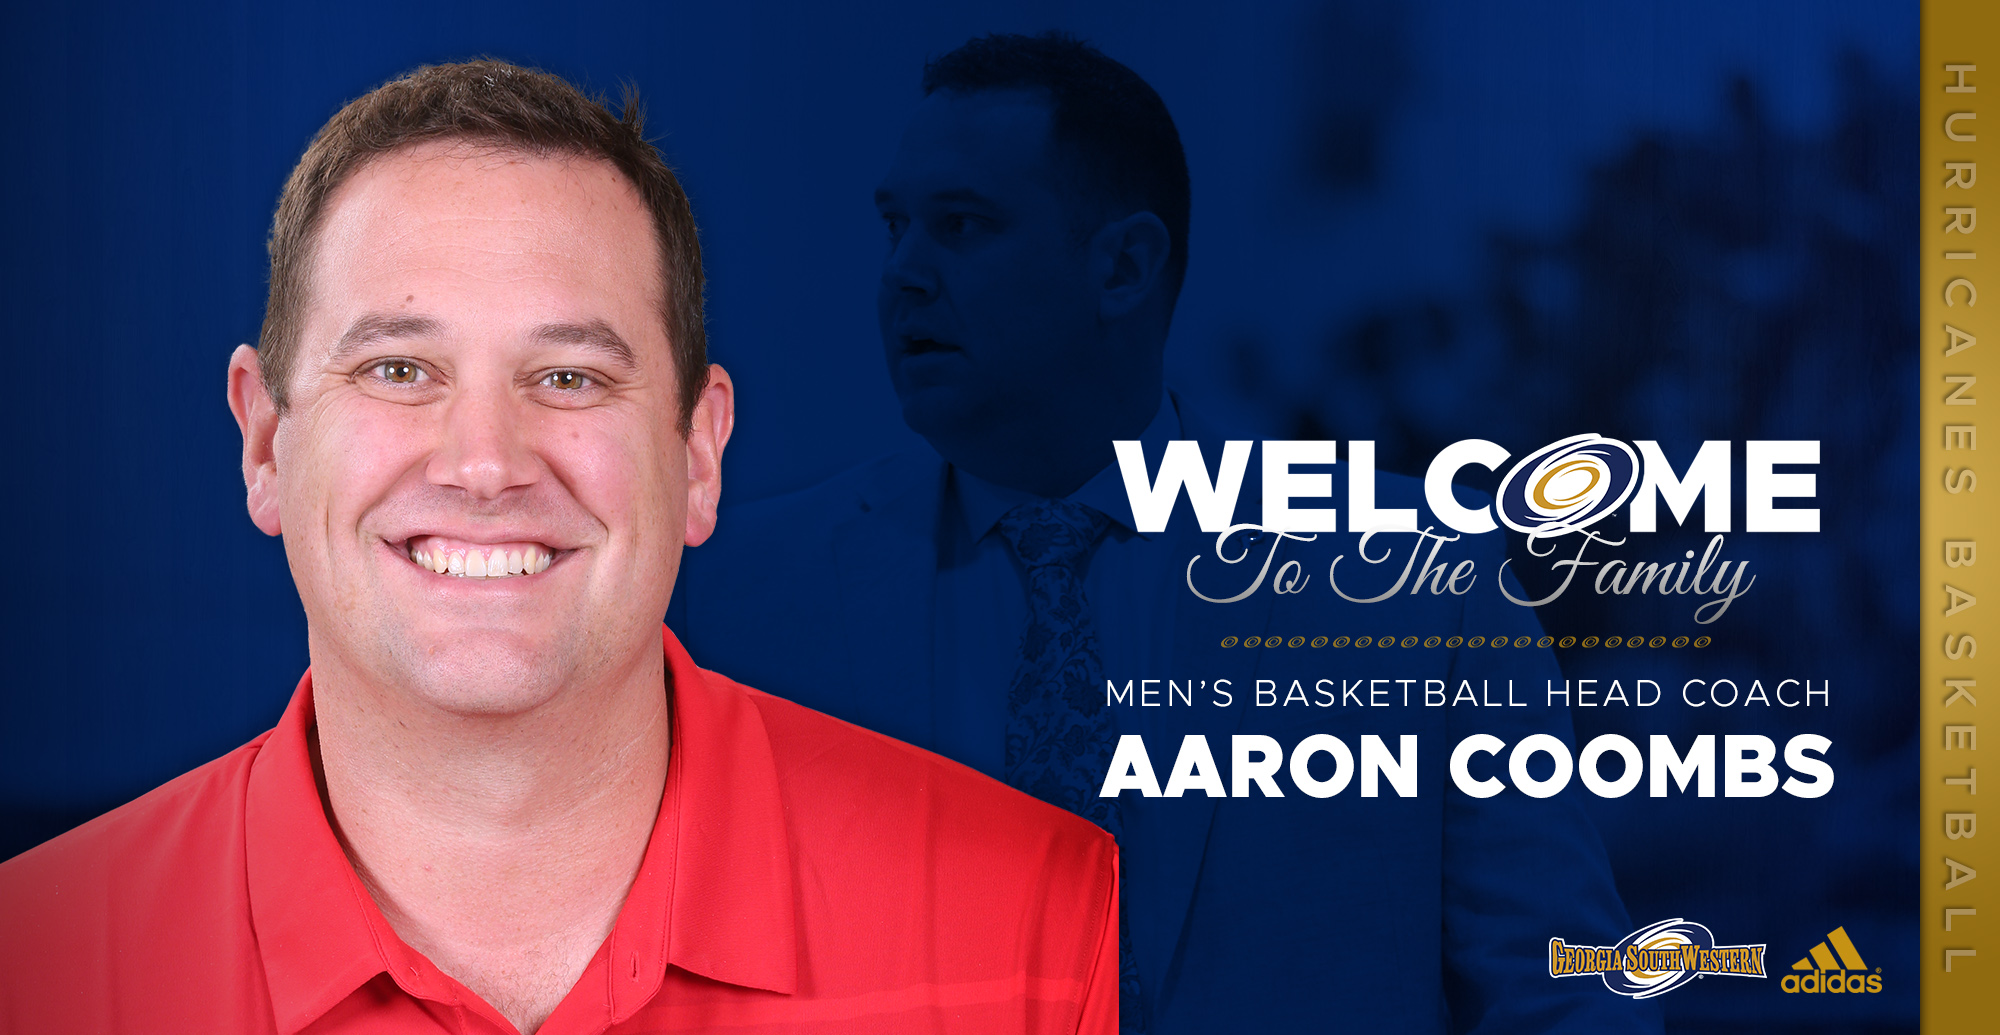 Coombs Hired to Lead GSW Men's Basketball